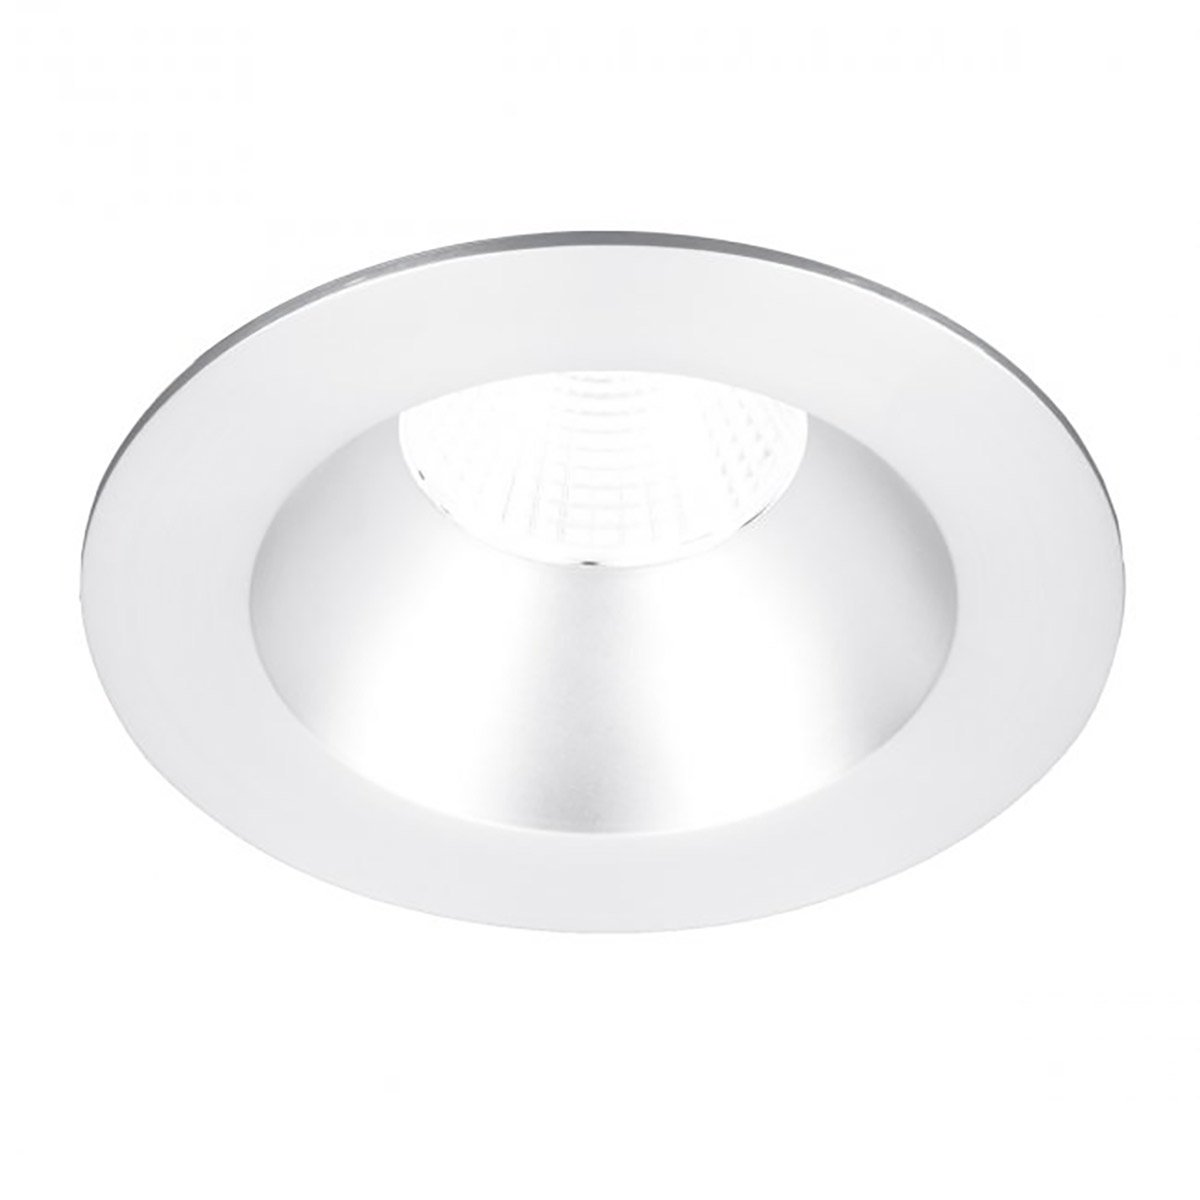 WAC Lighting R3BRD-F927-WT Oculux 3.5'' LED Round Open Reflector Trim Engine in White Finish; Flood Beam, 90+CRI and 2700K